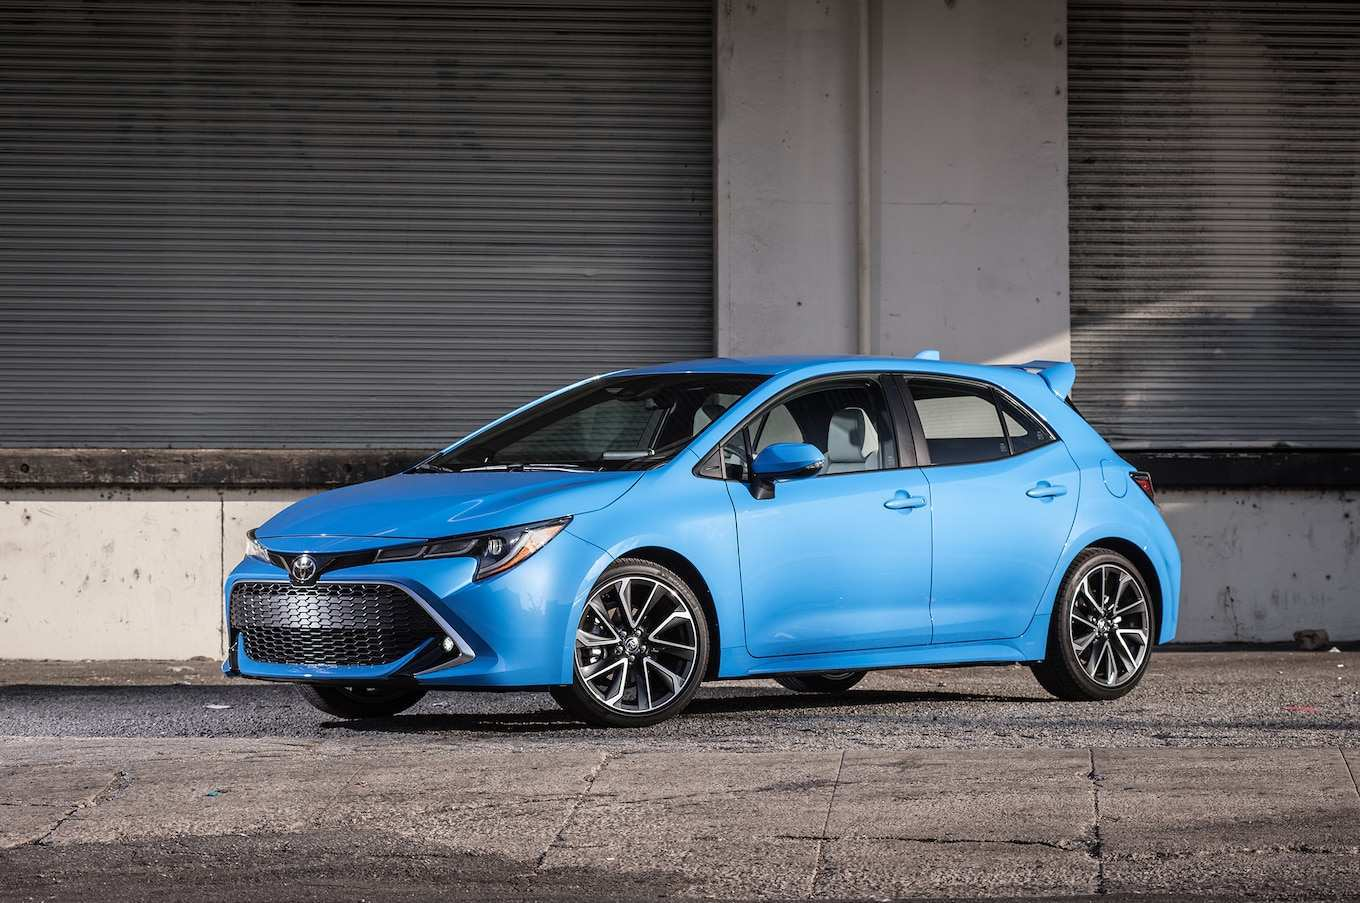 25 New 2019 Toyota Corolla Engine Reviews by 2019 Toyota Corolla Engine